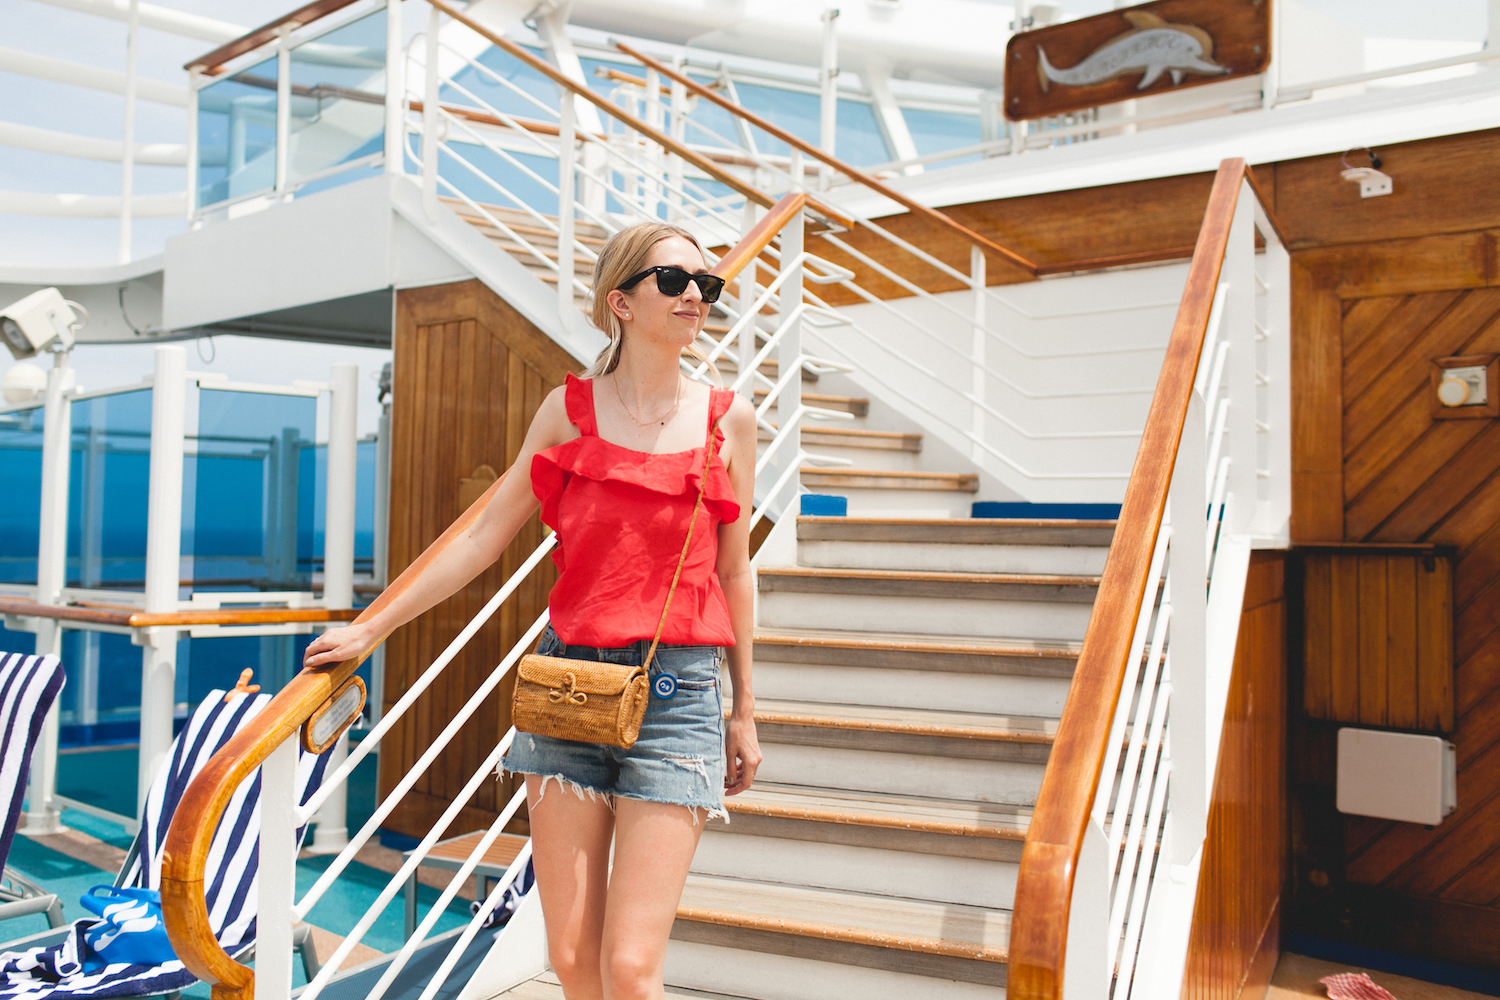 Princess Cruises, OceanMedallion, Caribbean cruise, travel, travel blog, style blogger, summer vacation, travel tips, cruising, Caribbean Princess, dream trip, cruise outfit, outfit inspiration, denim shorts